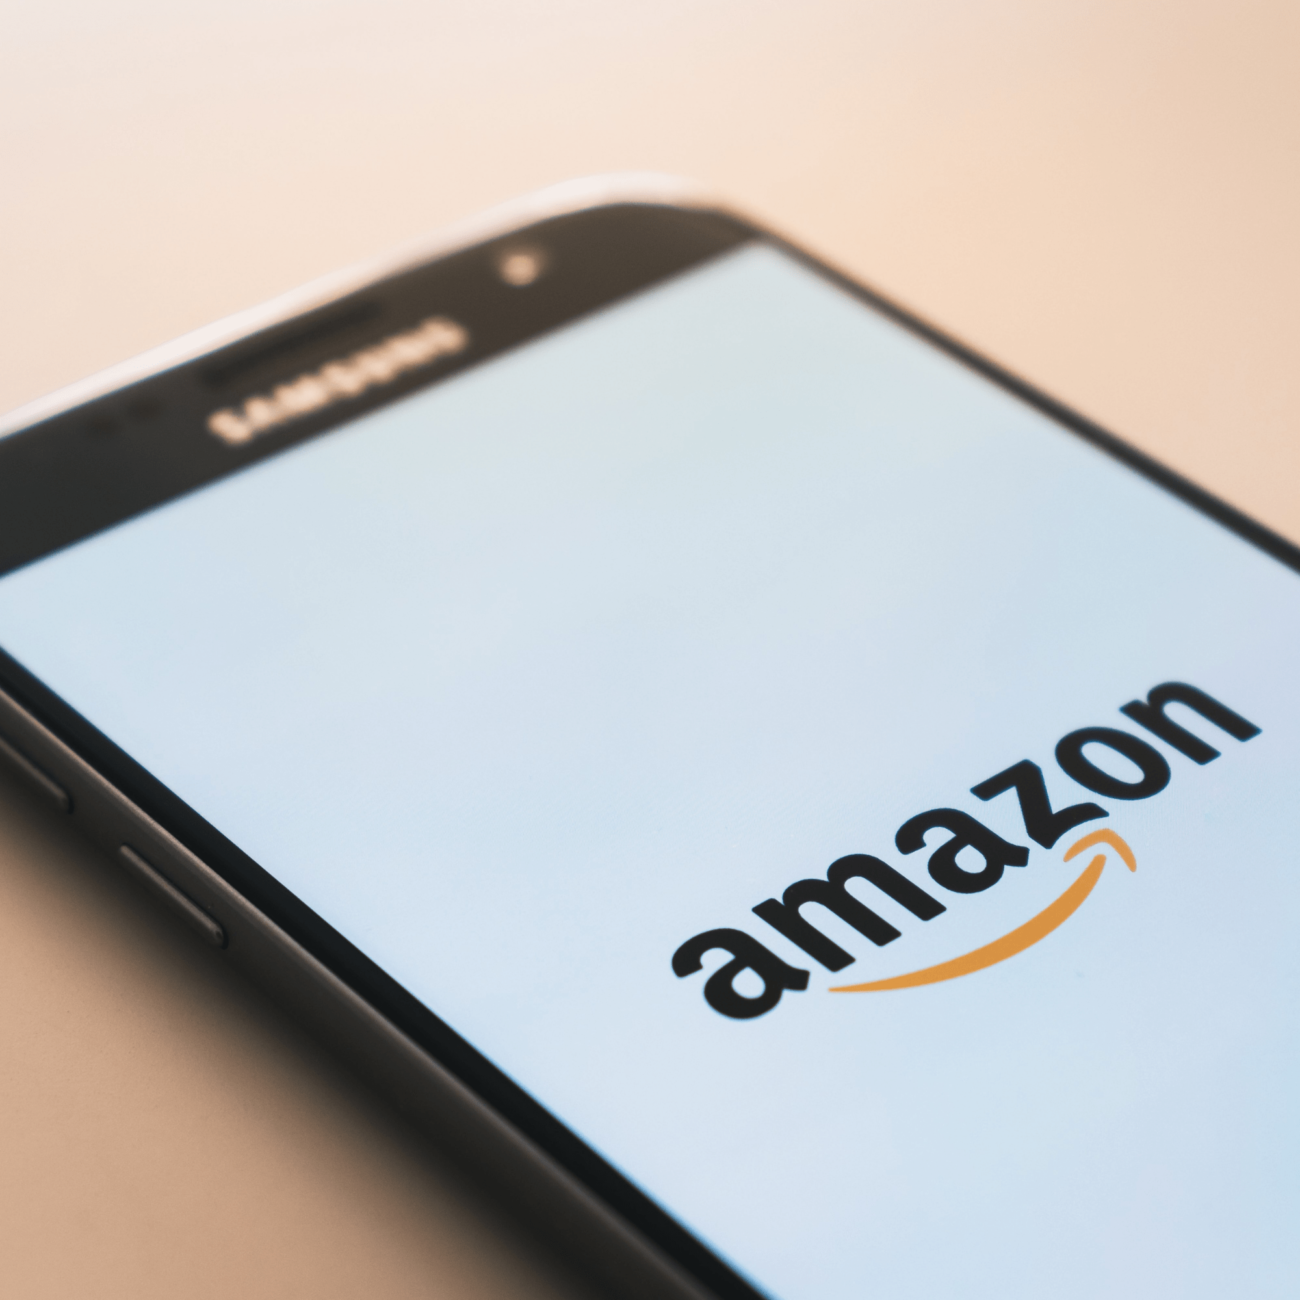 Smartphone sitting on a table with the Amazon logo on its screen.